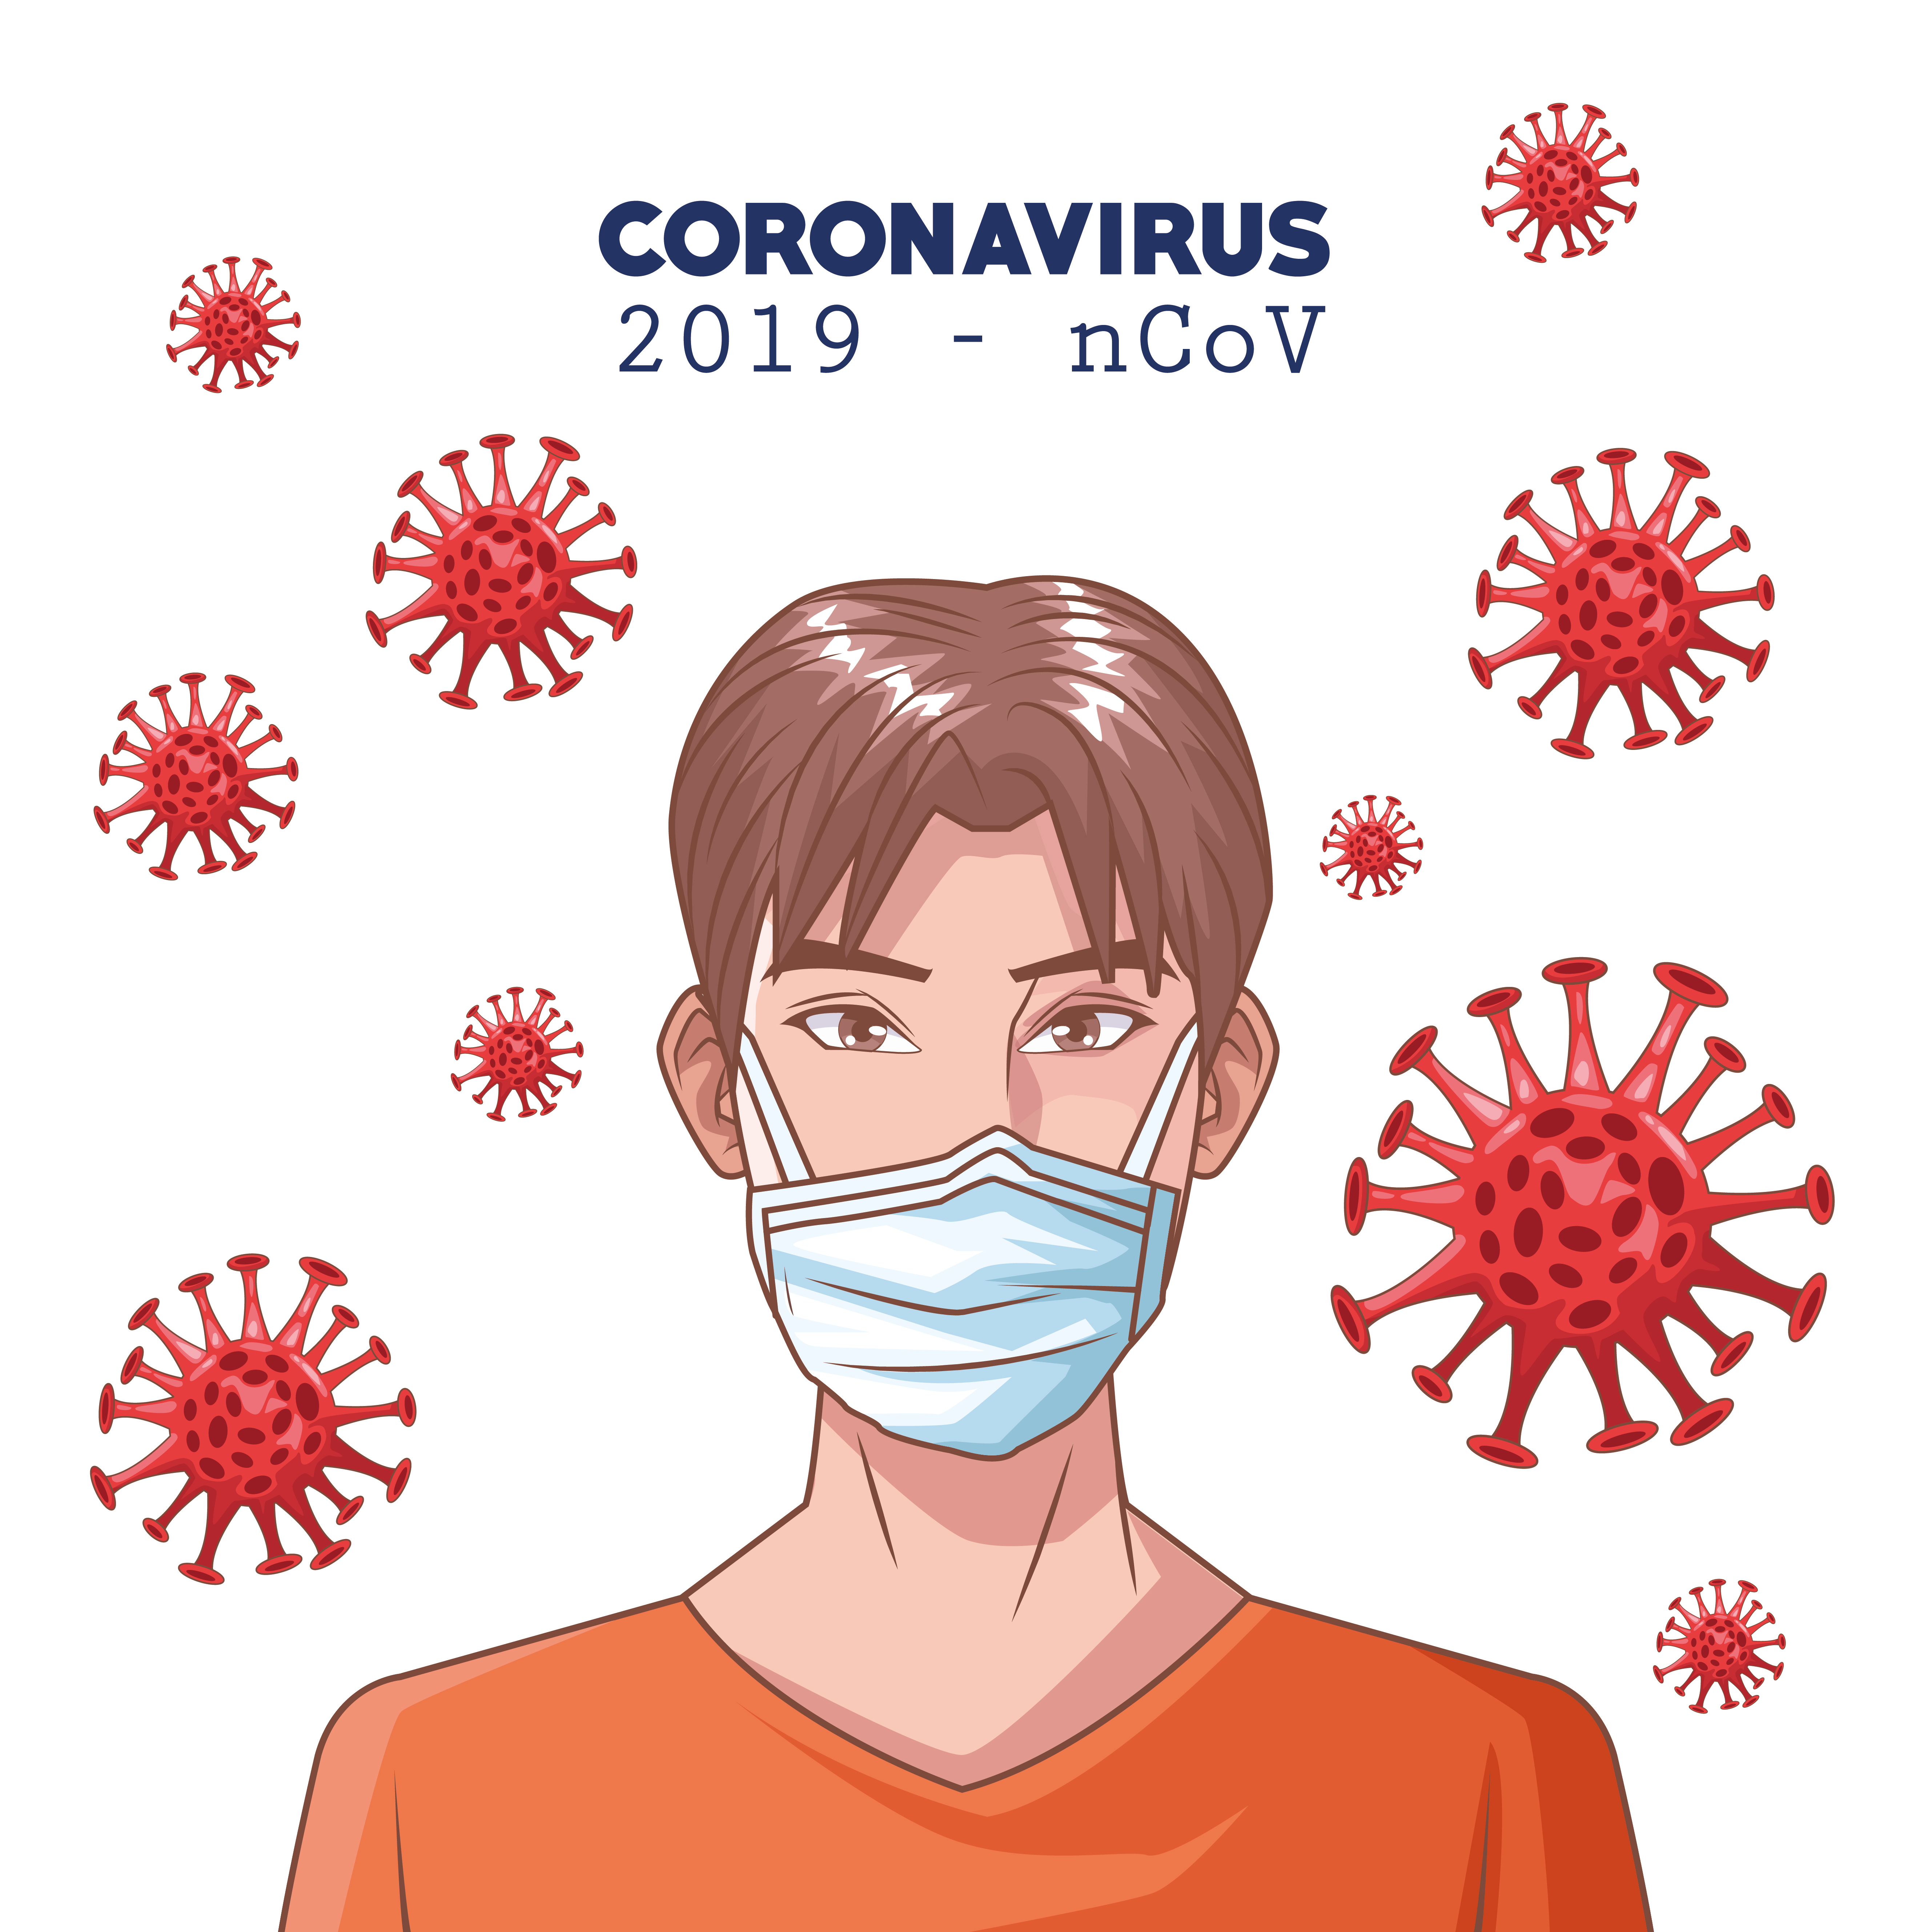 Coronavirus infographic with man using medical face mask